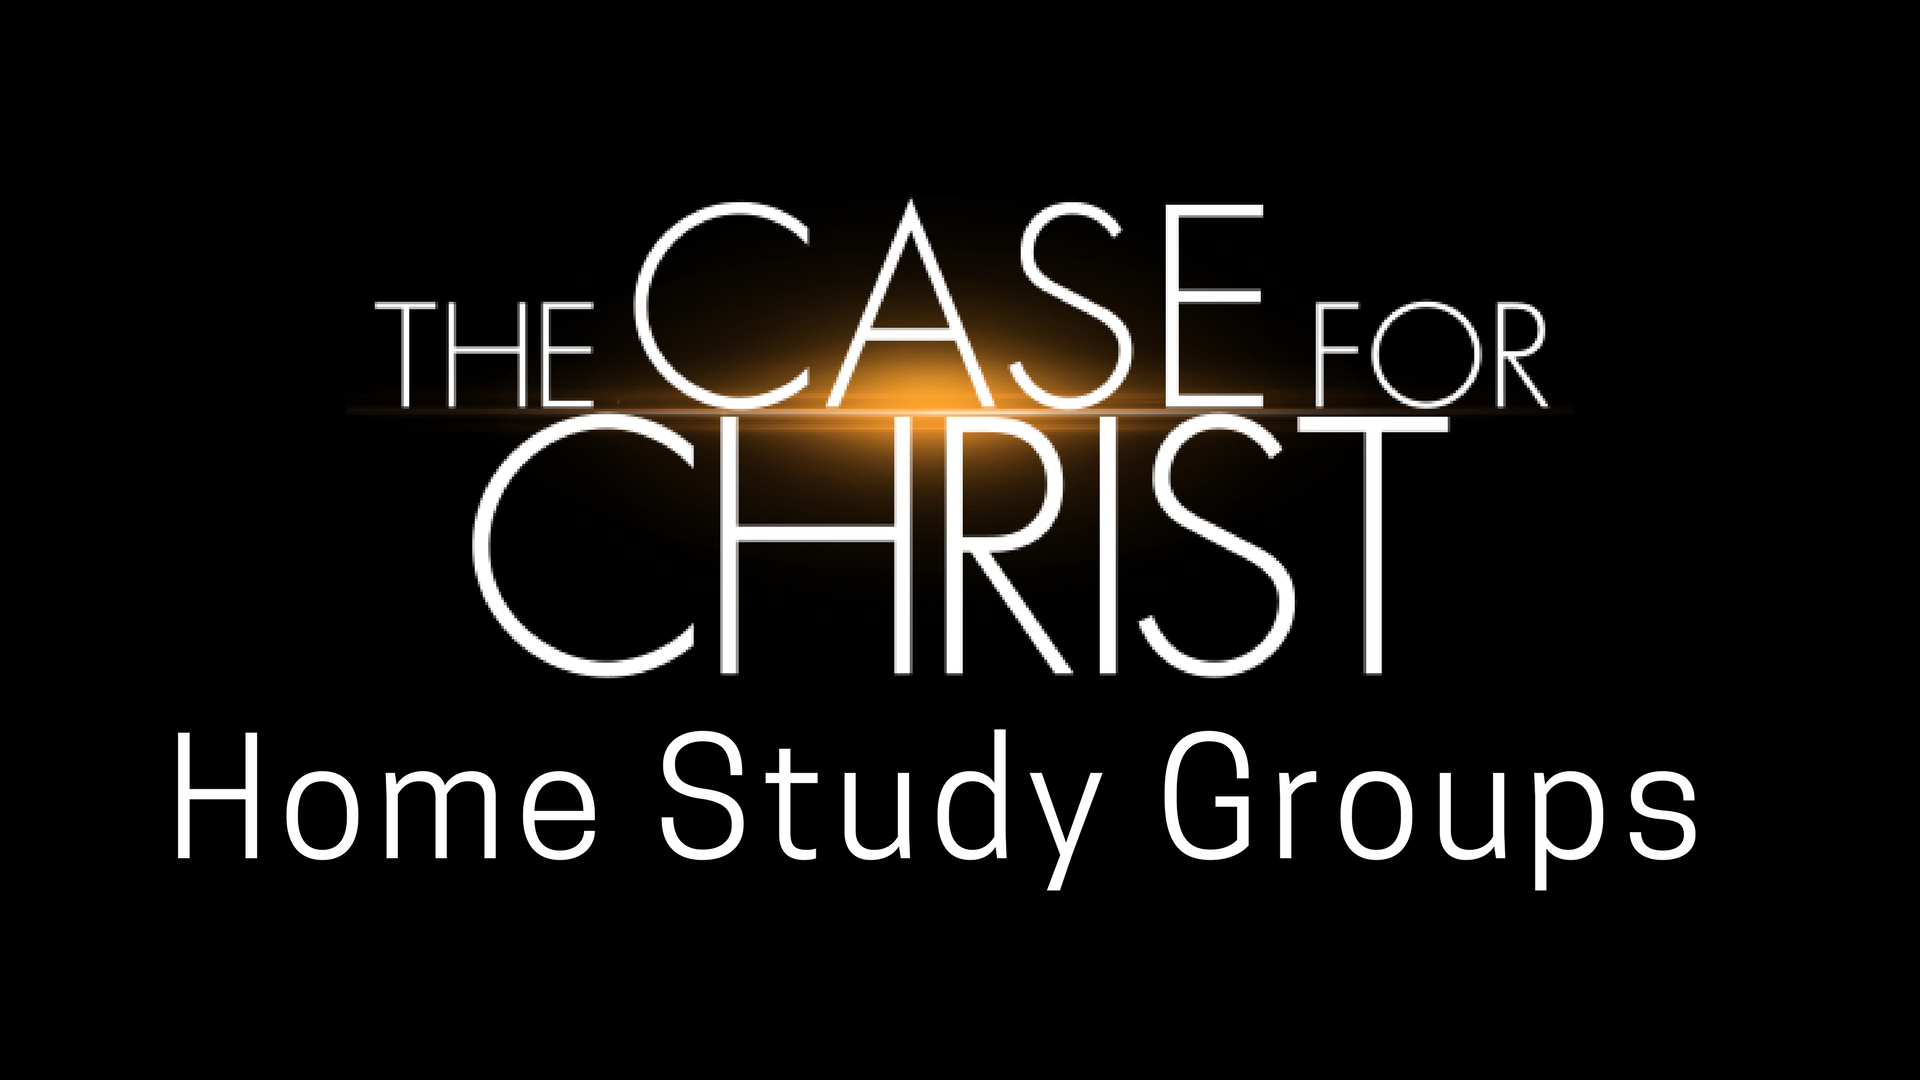 The Case for Christ Home Study Groups are for the Month of August.